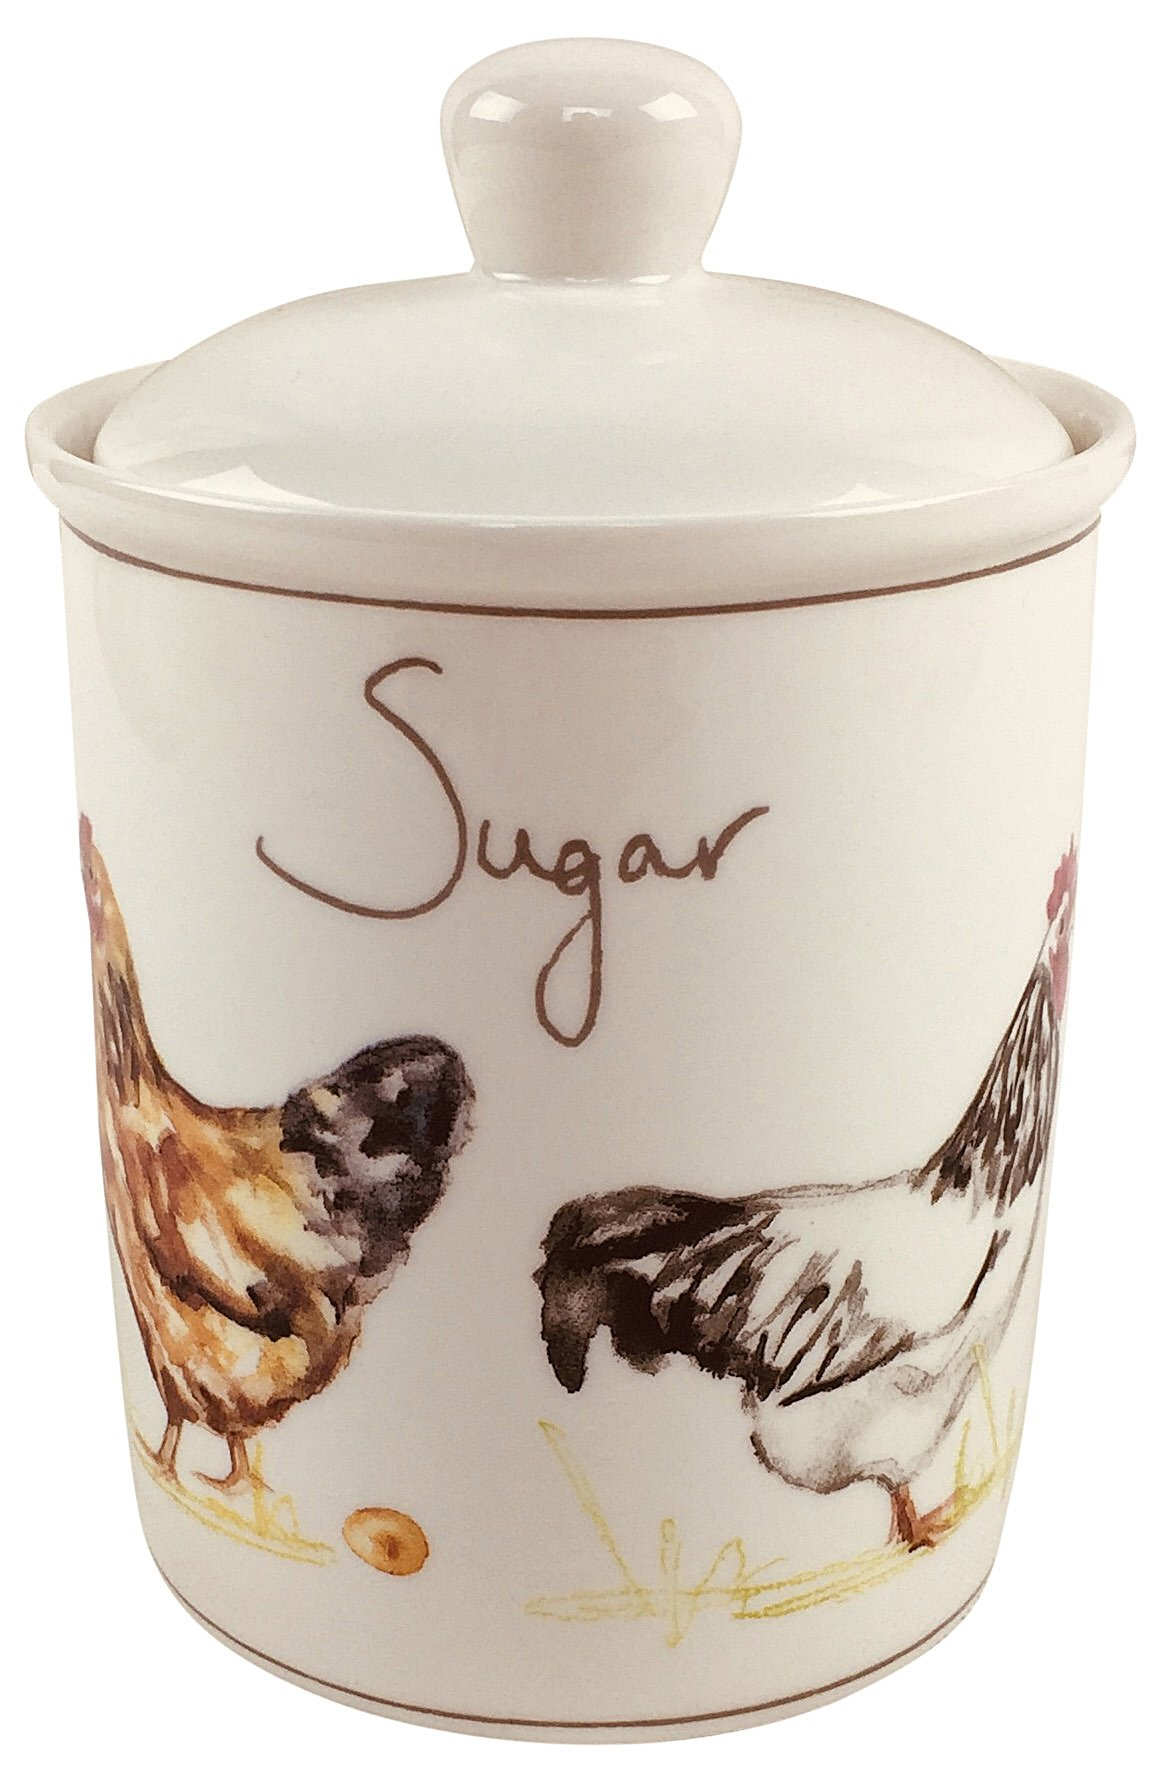 Country Chickens Ceramic Canister - Sugar